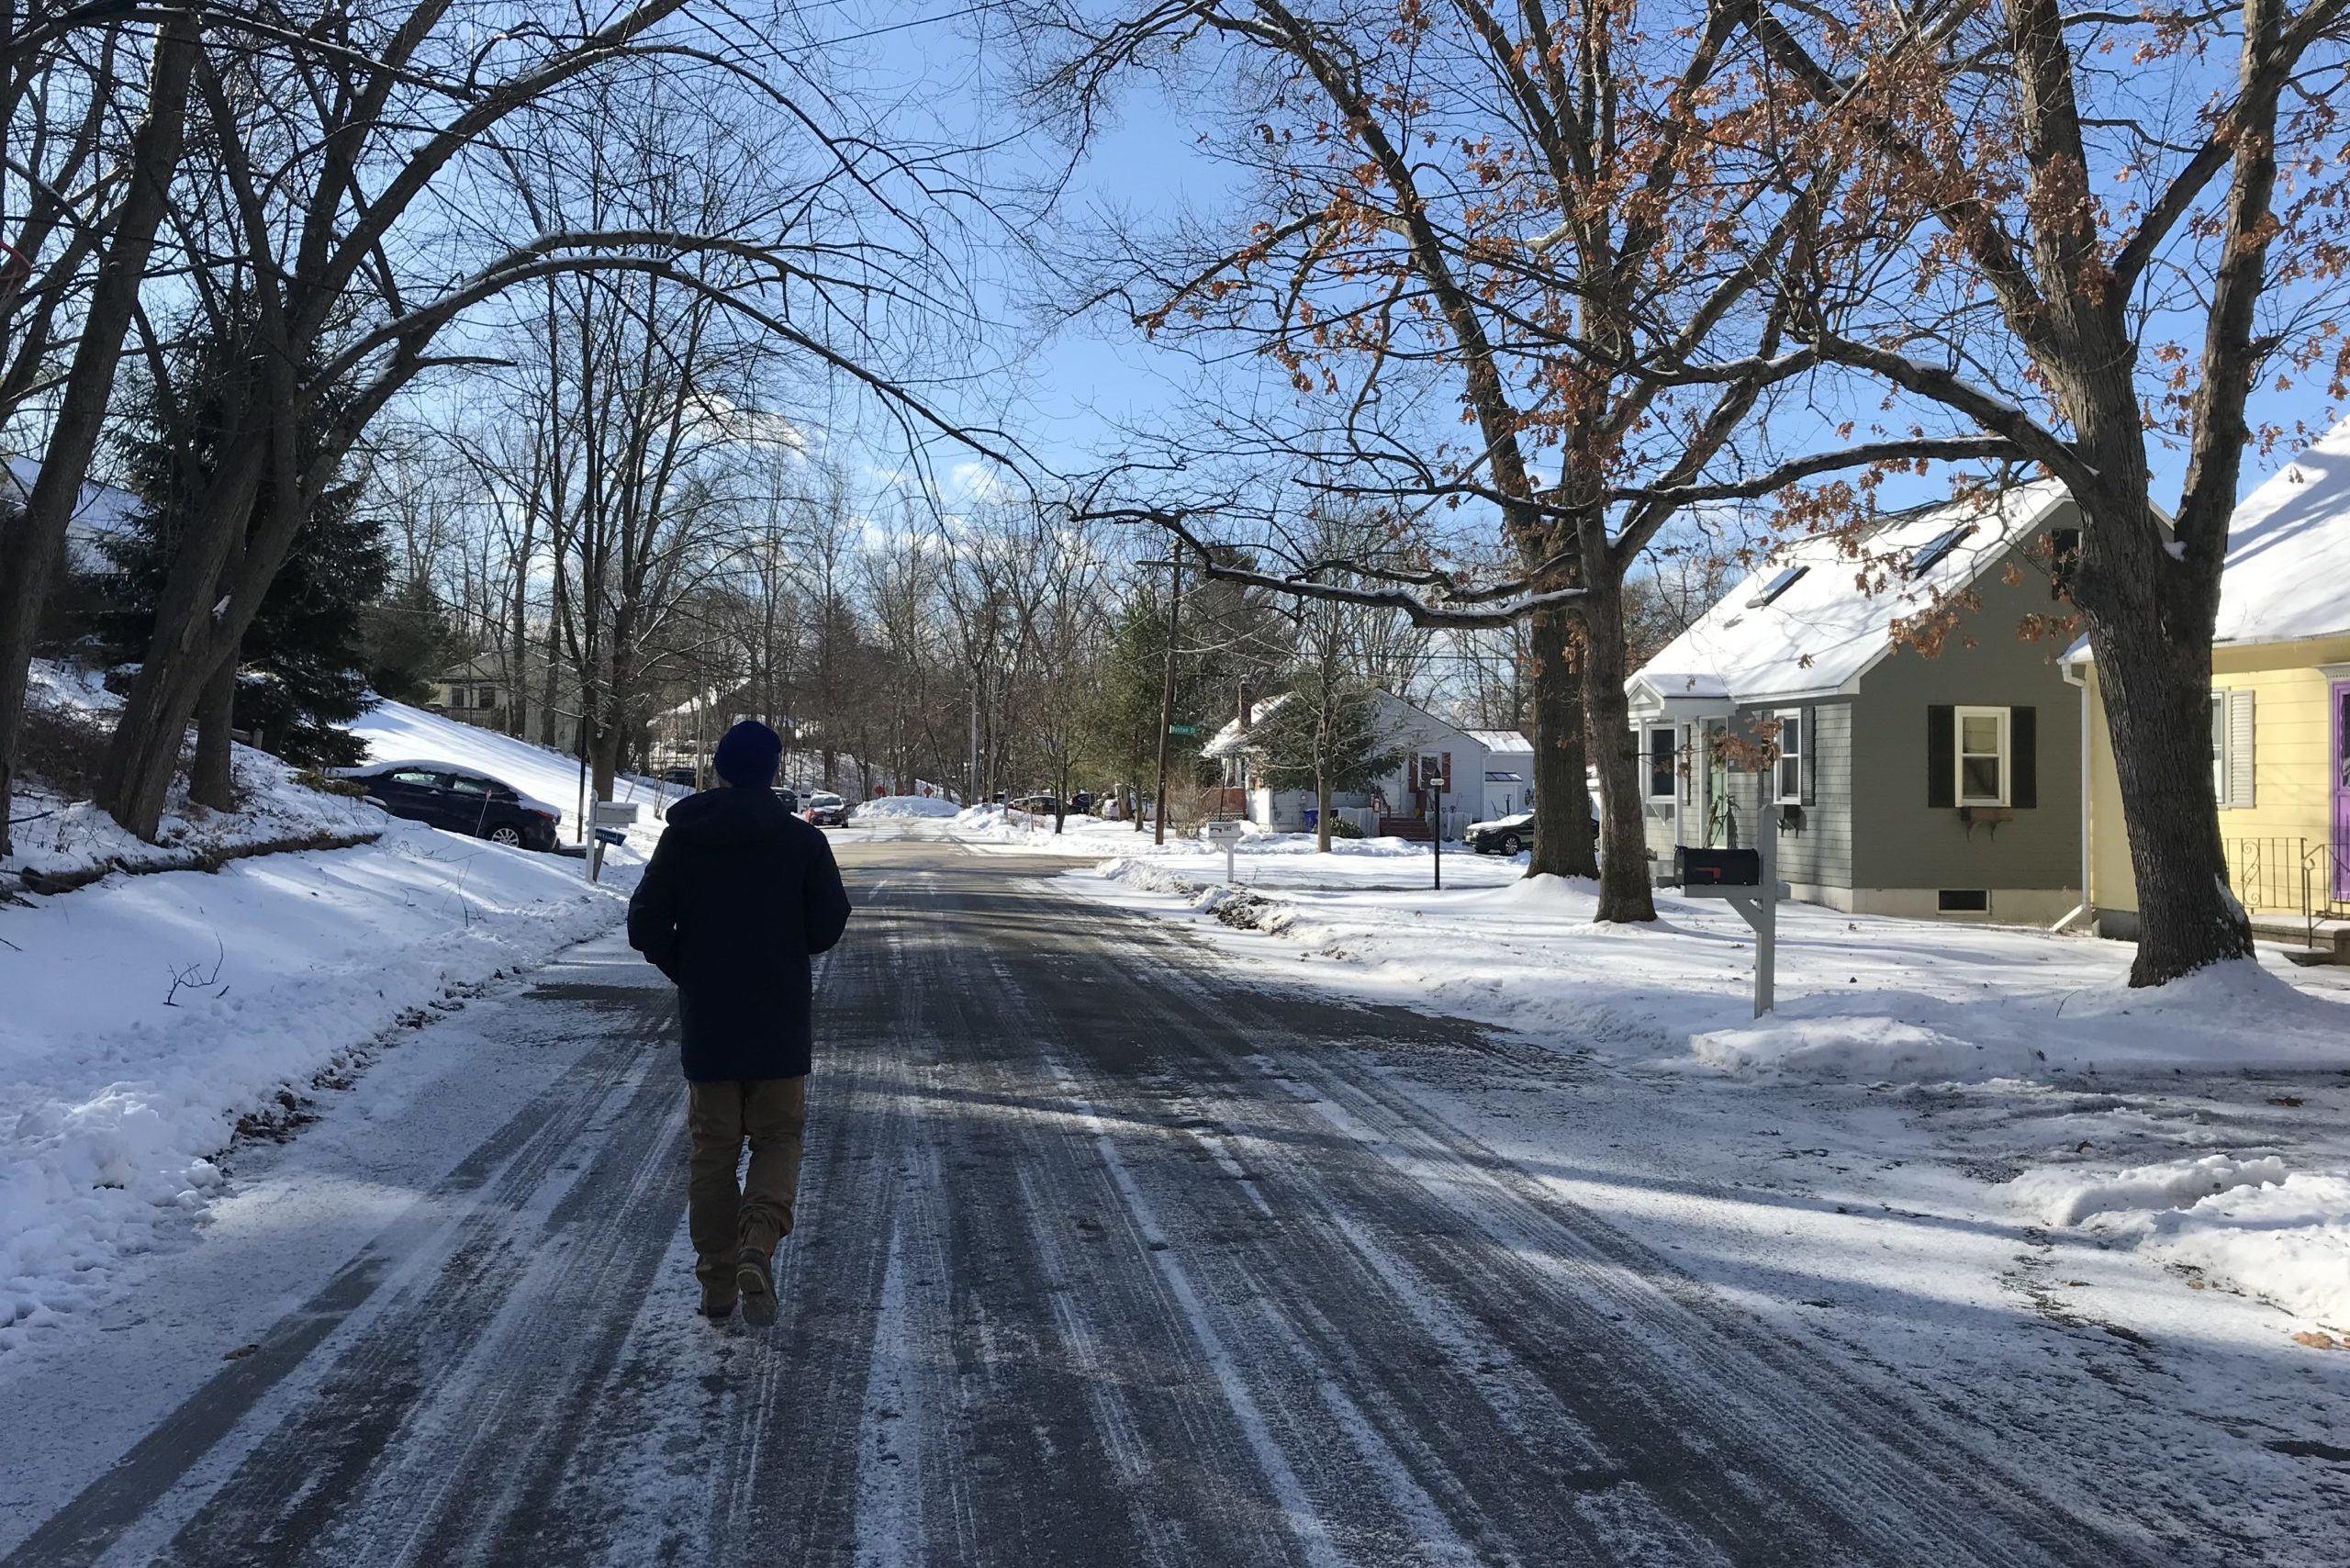 Brendan Powers walks to the next house on his list as he canvasses for Michael Bennet in Manchester, N.H.